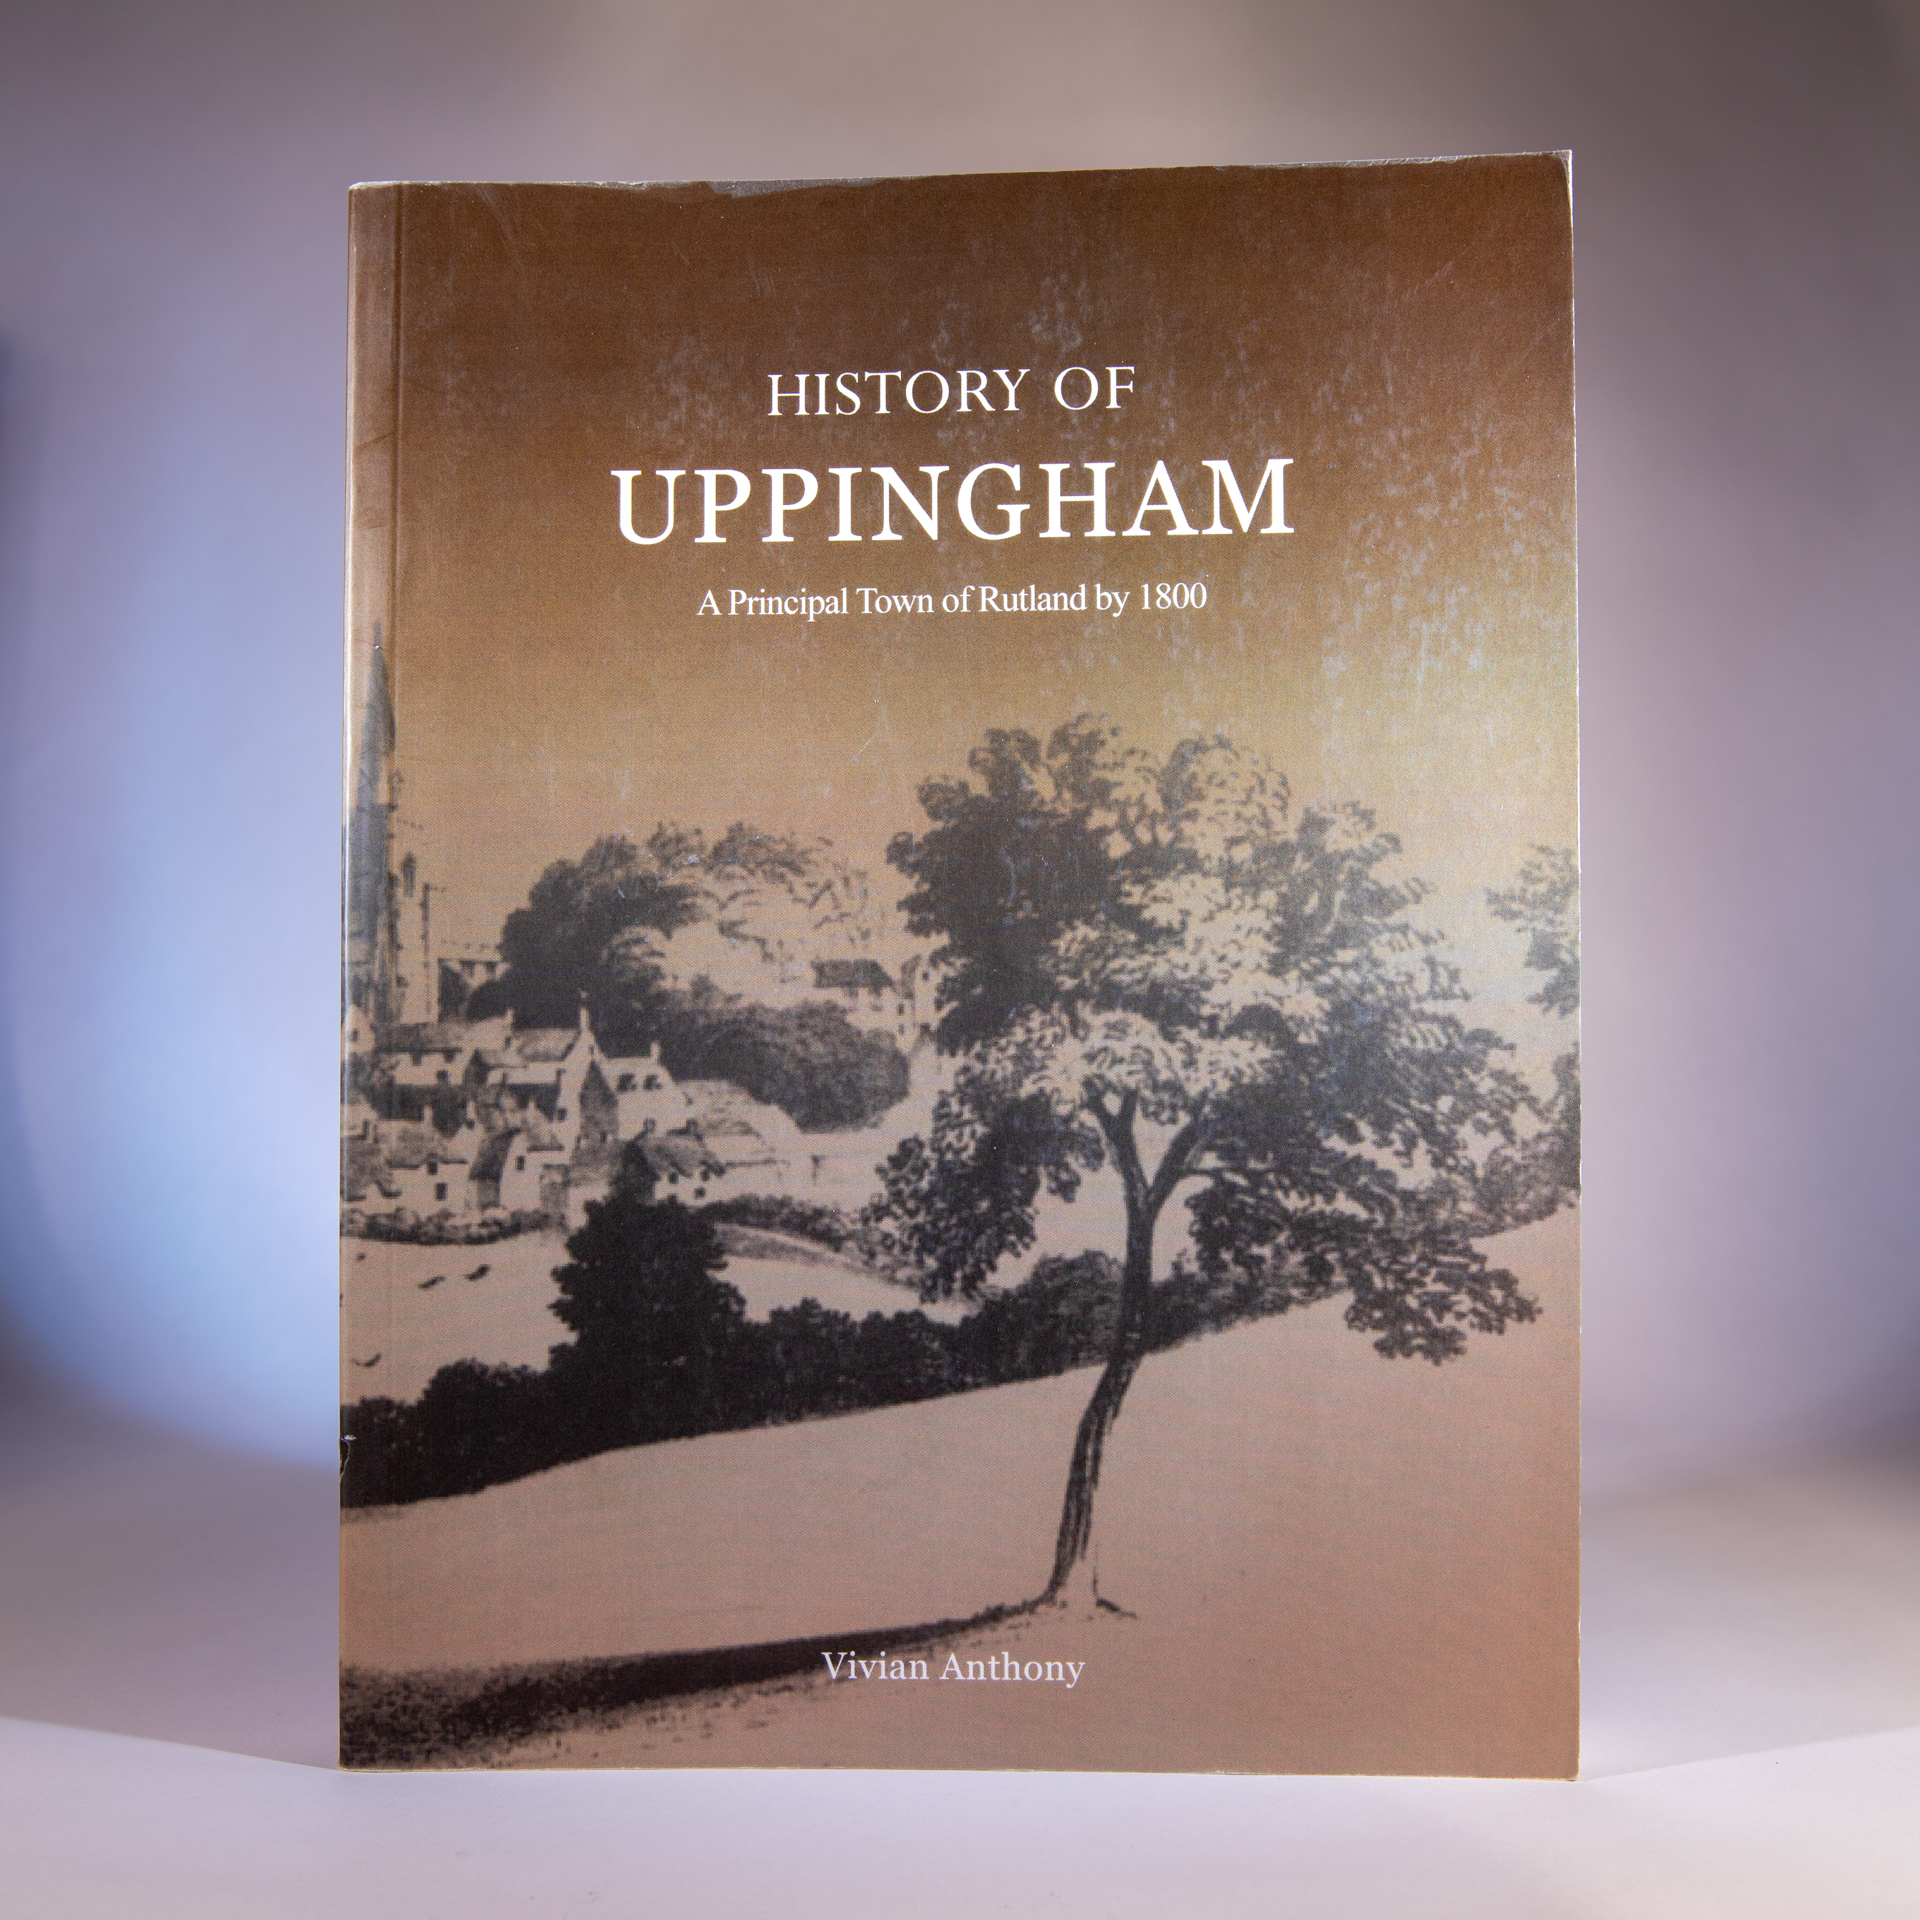 The History of Uppingham